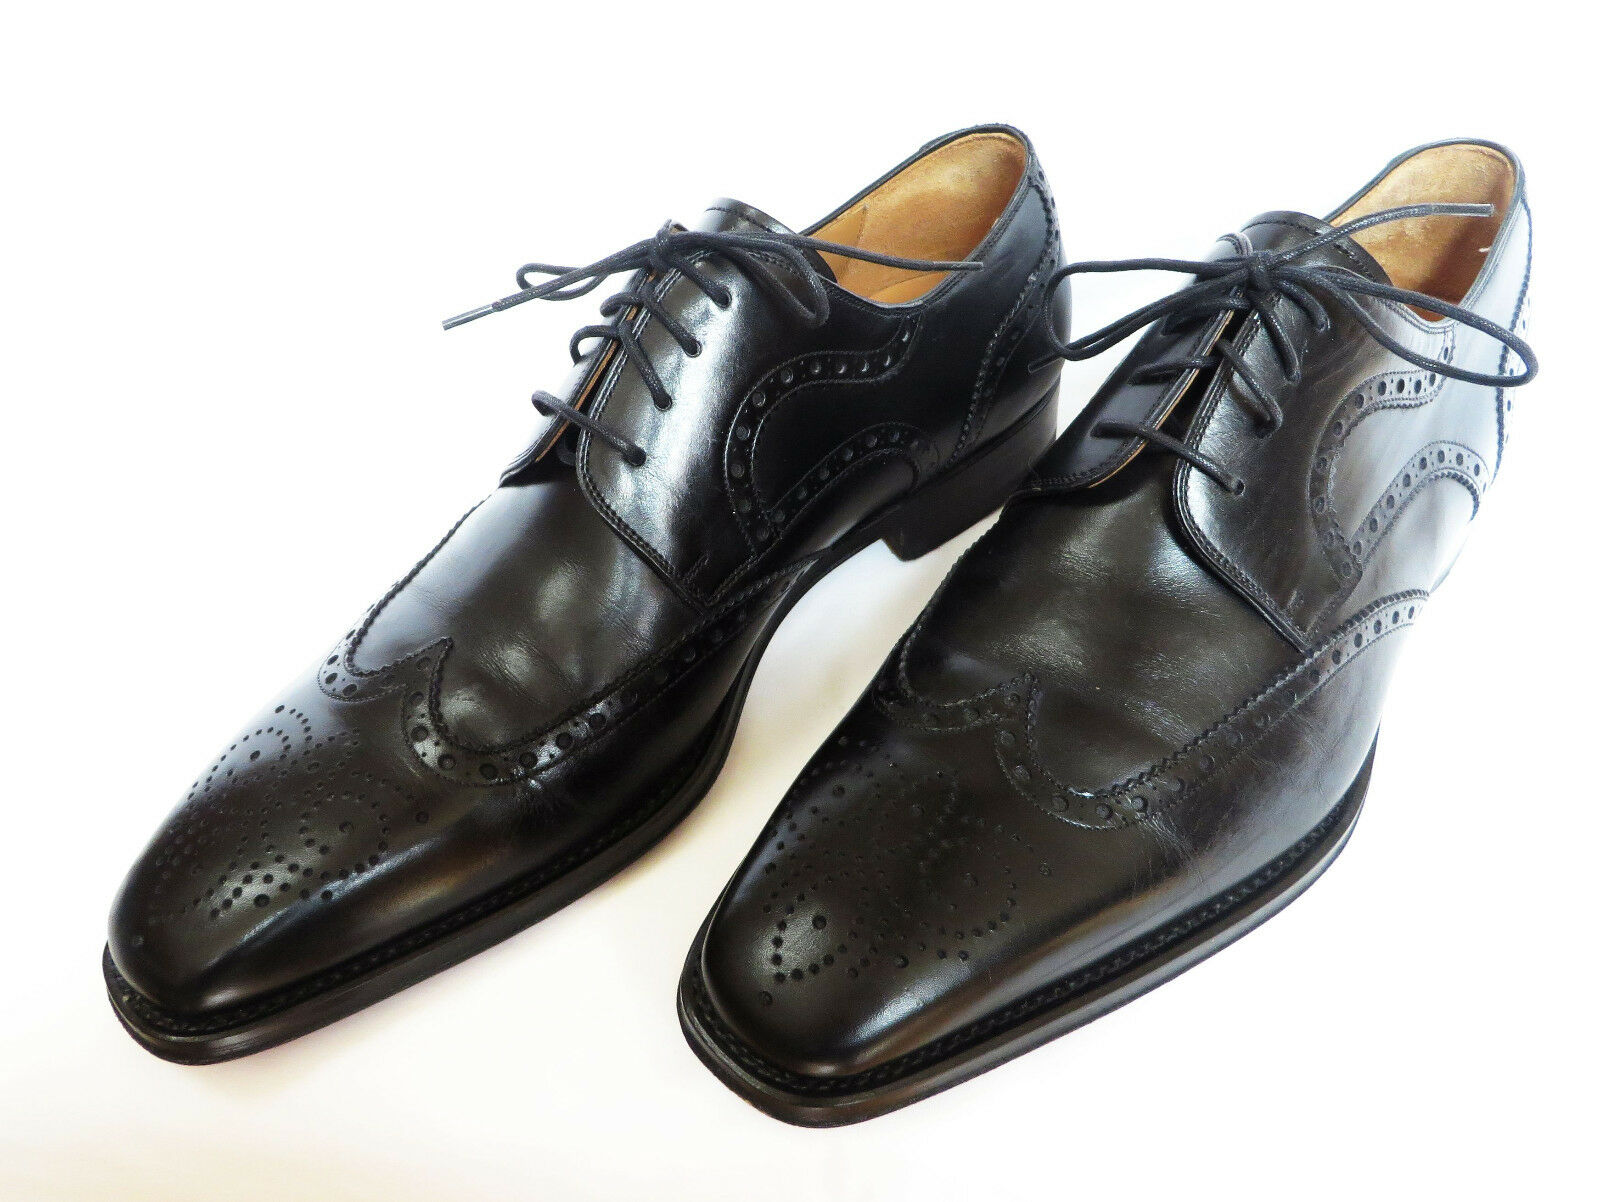 MAGNANI Sergio Spagna Mens nero Wing Tip Leather Derby Oxfords  scarpe 9.5 M  design unico